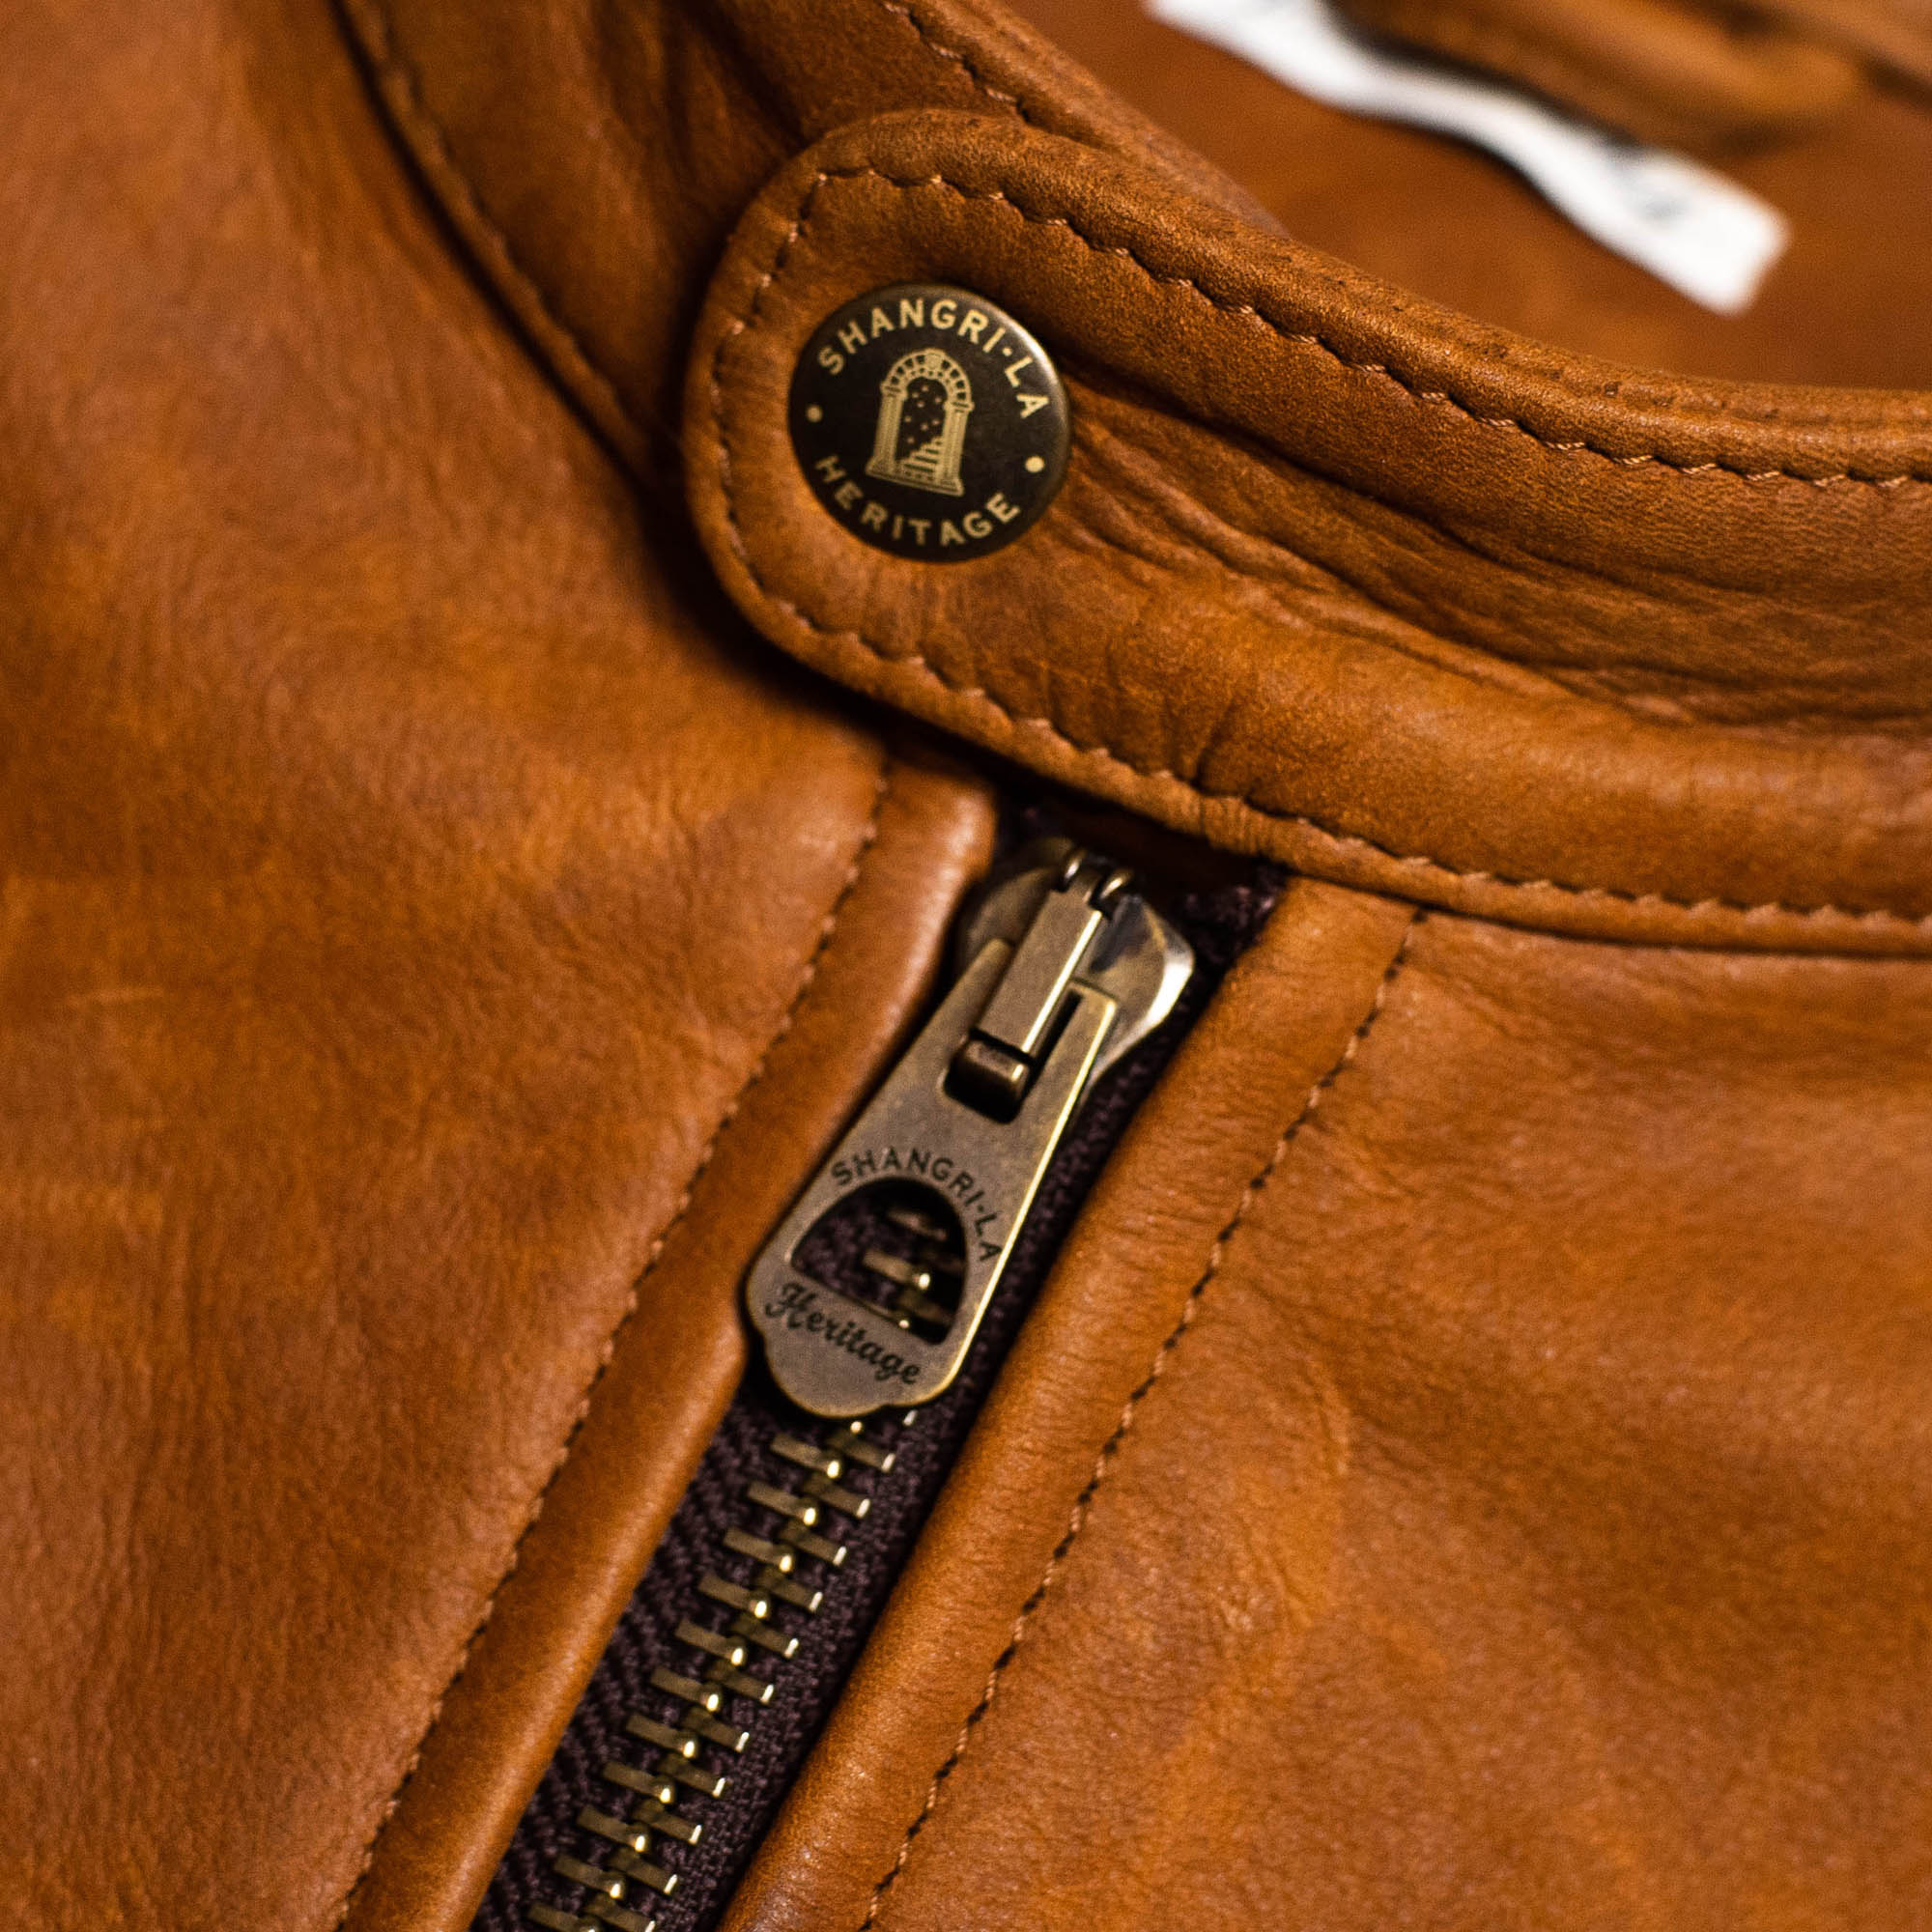 shangri-la-heritage-cafe-racer-nubuck-leather-jacket-still-life-zipper